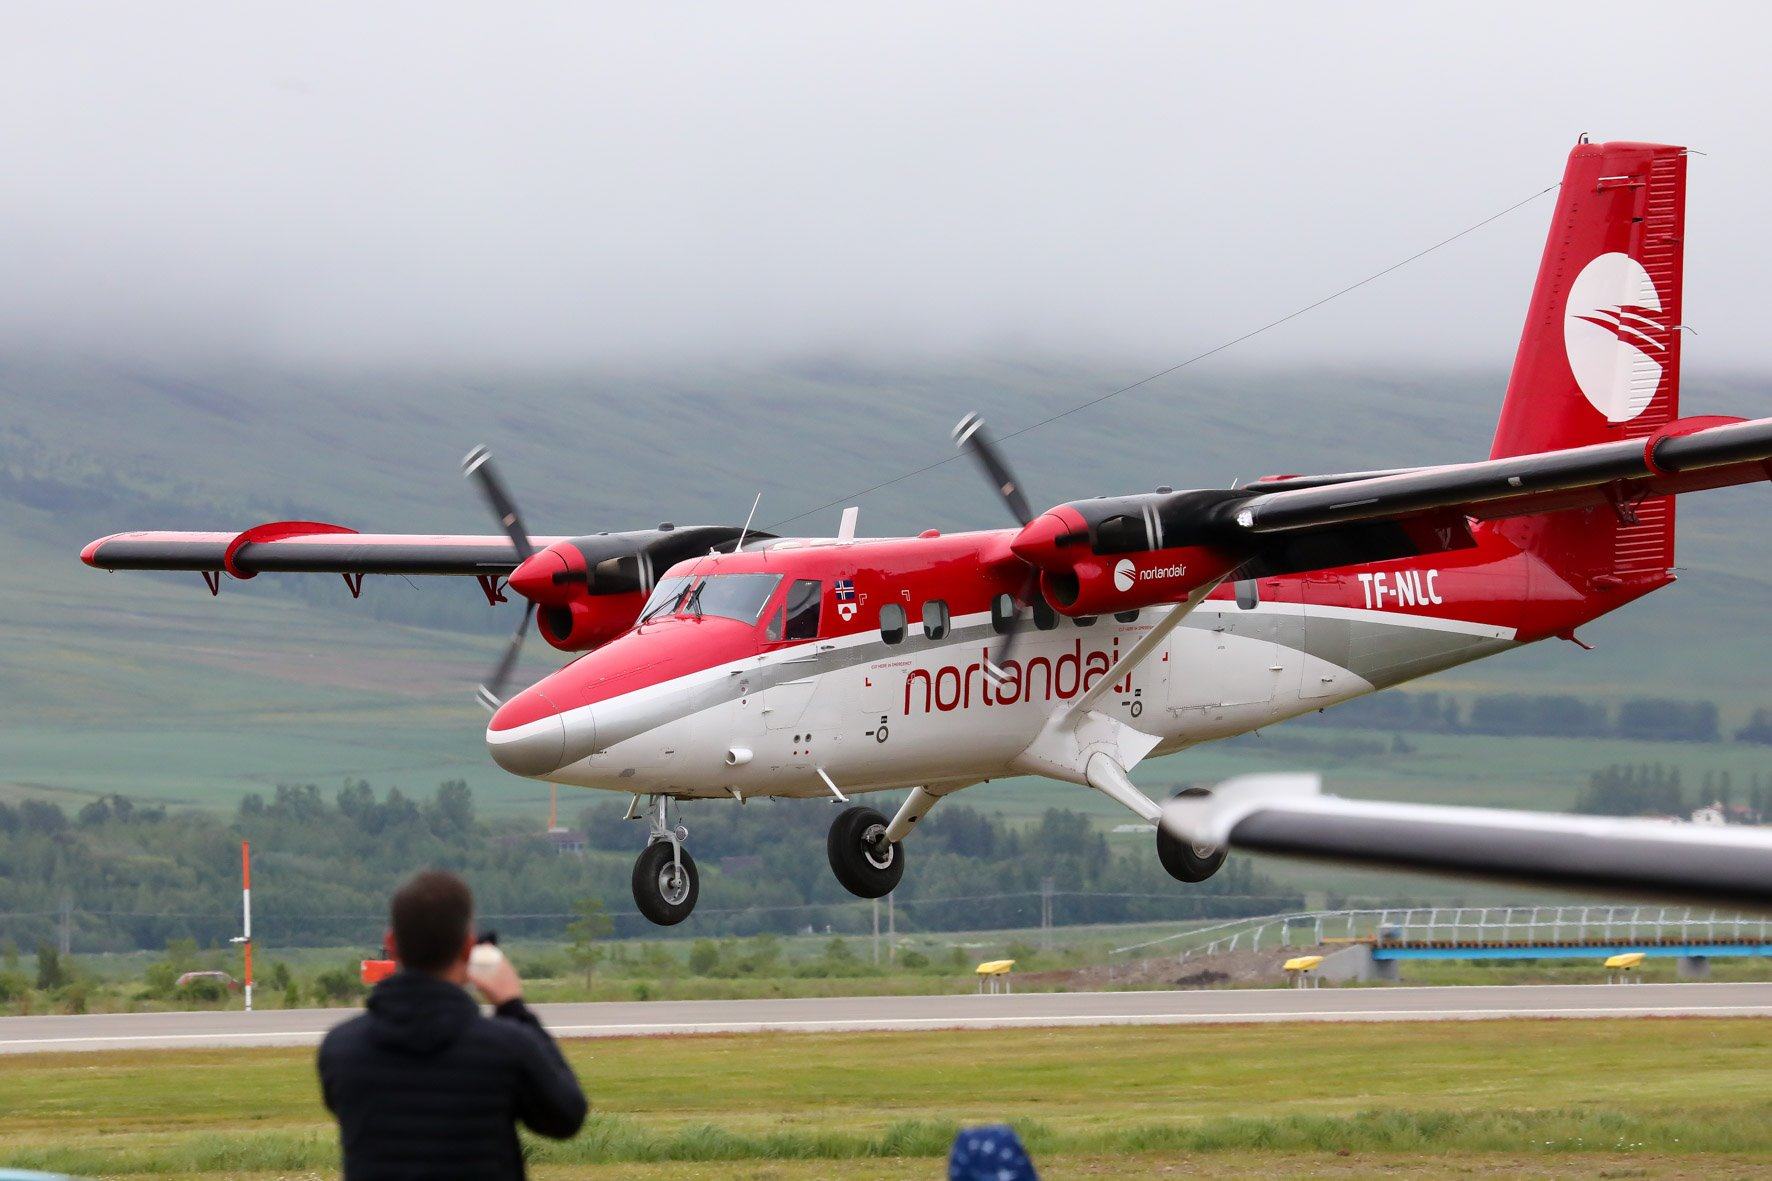 Norladnair DHC-6 Twin Otter reg, TF-NLC demonstrates STOL capabilities // Source: Hörður Geirsson